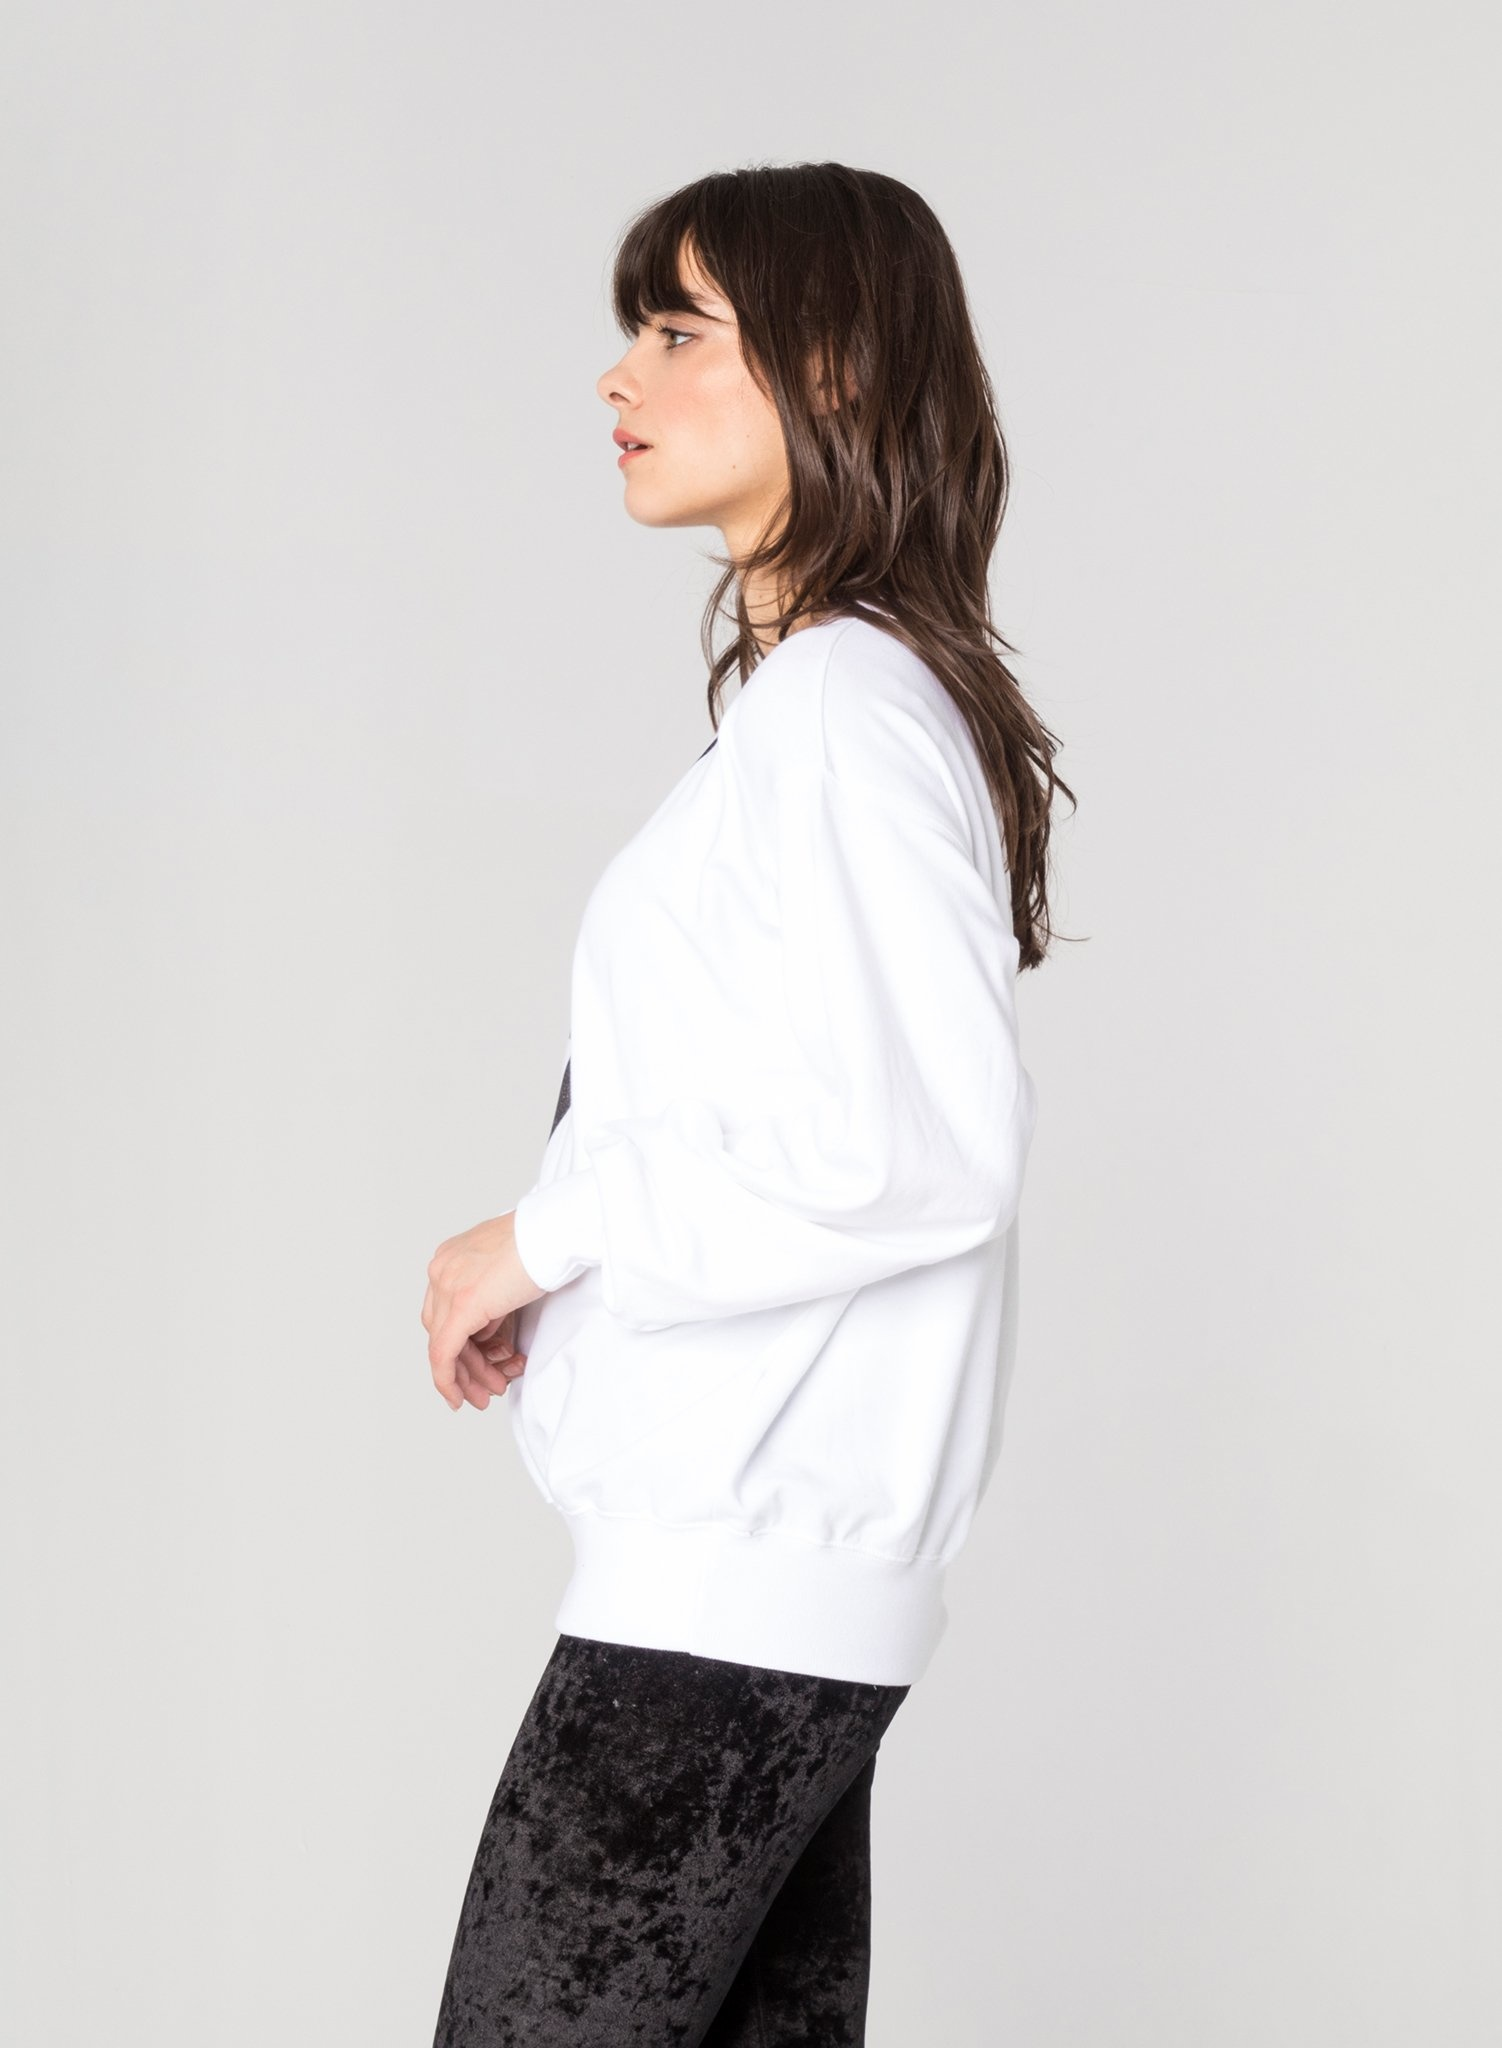 CHRLDR LIGHTNING BOLT - Oversized Crew Neck Sweatshirt